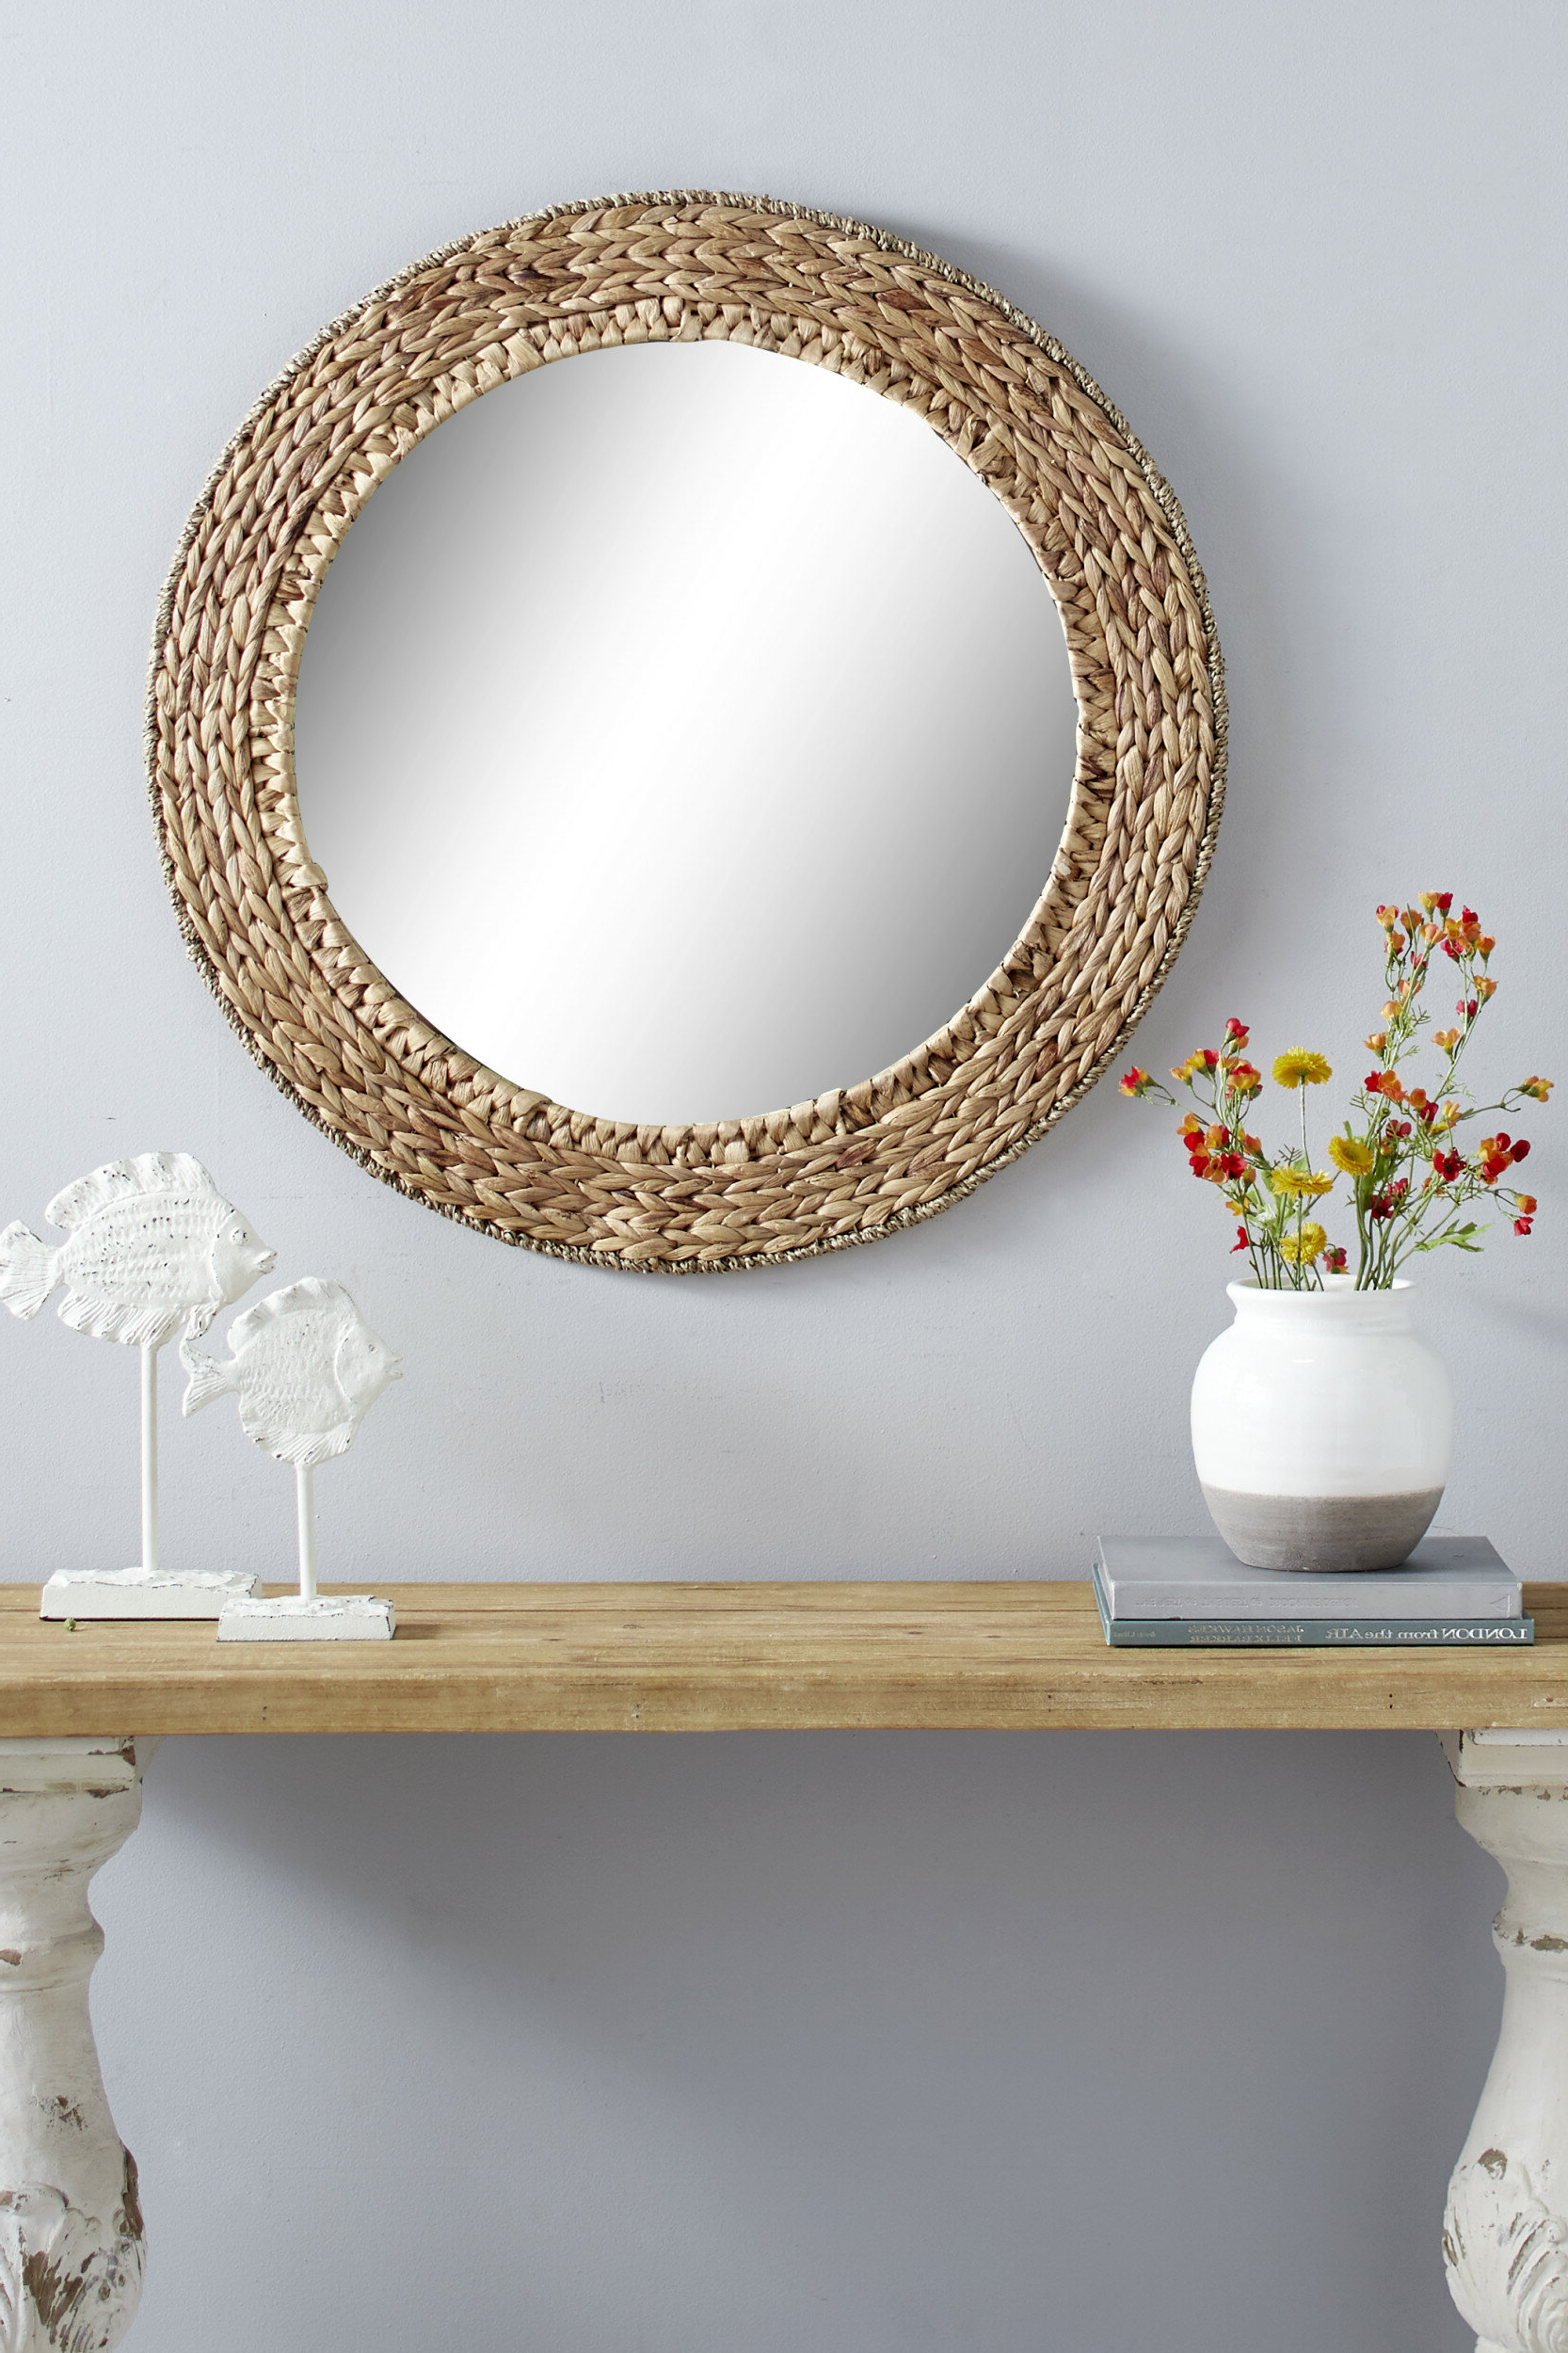 Round Eclectic Accent Mirrors Regarding Well Known Chiara Round Handmade Wicker Rustic Accent Mirror (View 11 of 20)